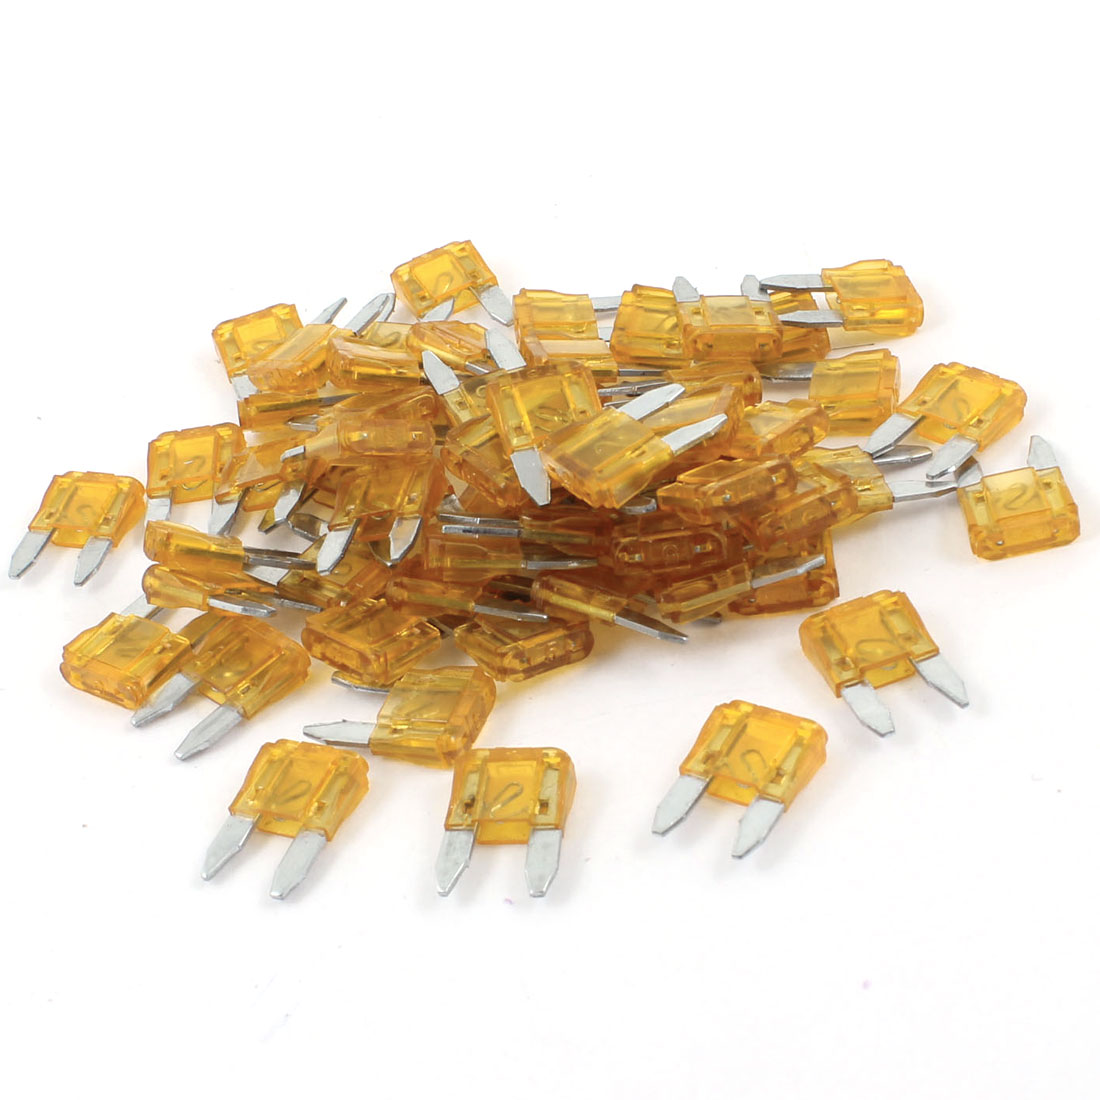 60 Pcs Plastic Housing 5A Vehicle Car Auto Blade Fuses Orange